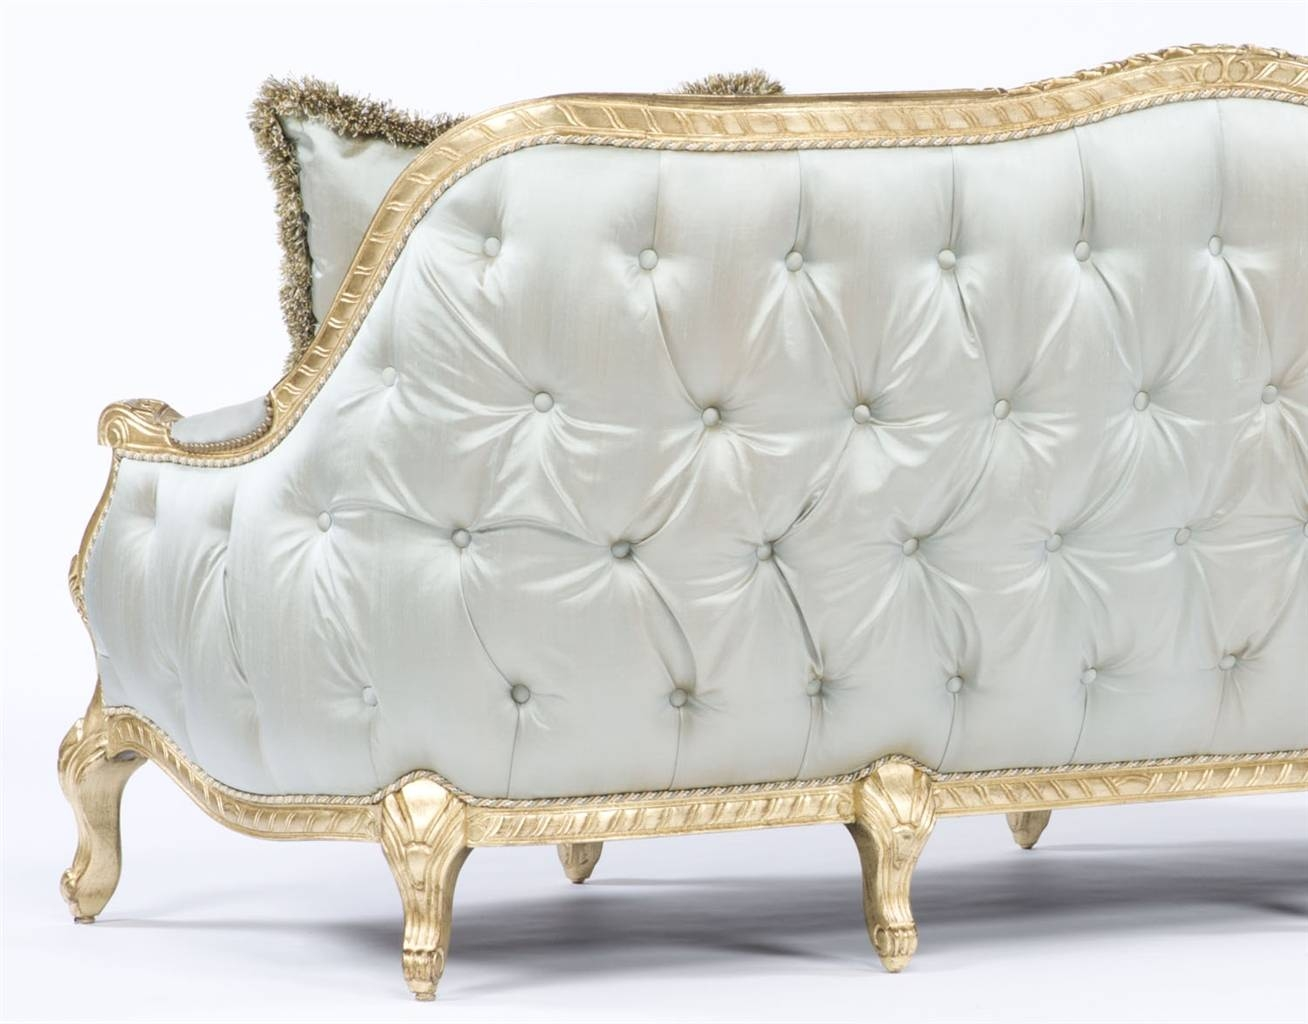 French Style Sofa. Tufted Luxury Furniture. 301 with French Style Sofa (Image 12 of 25)